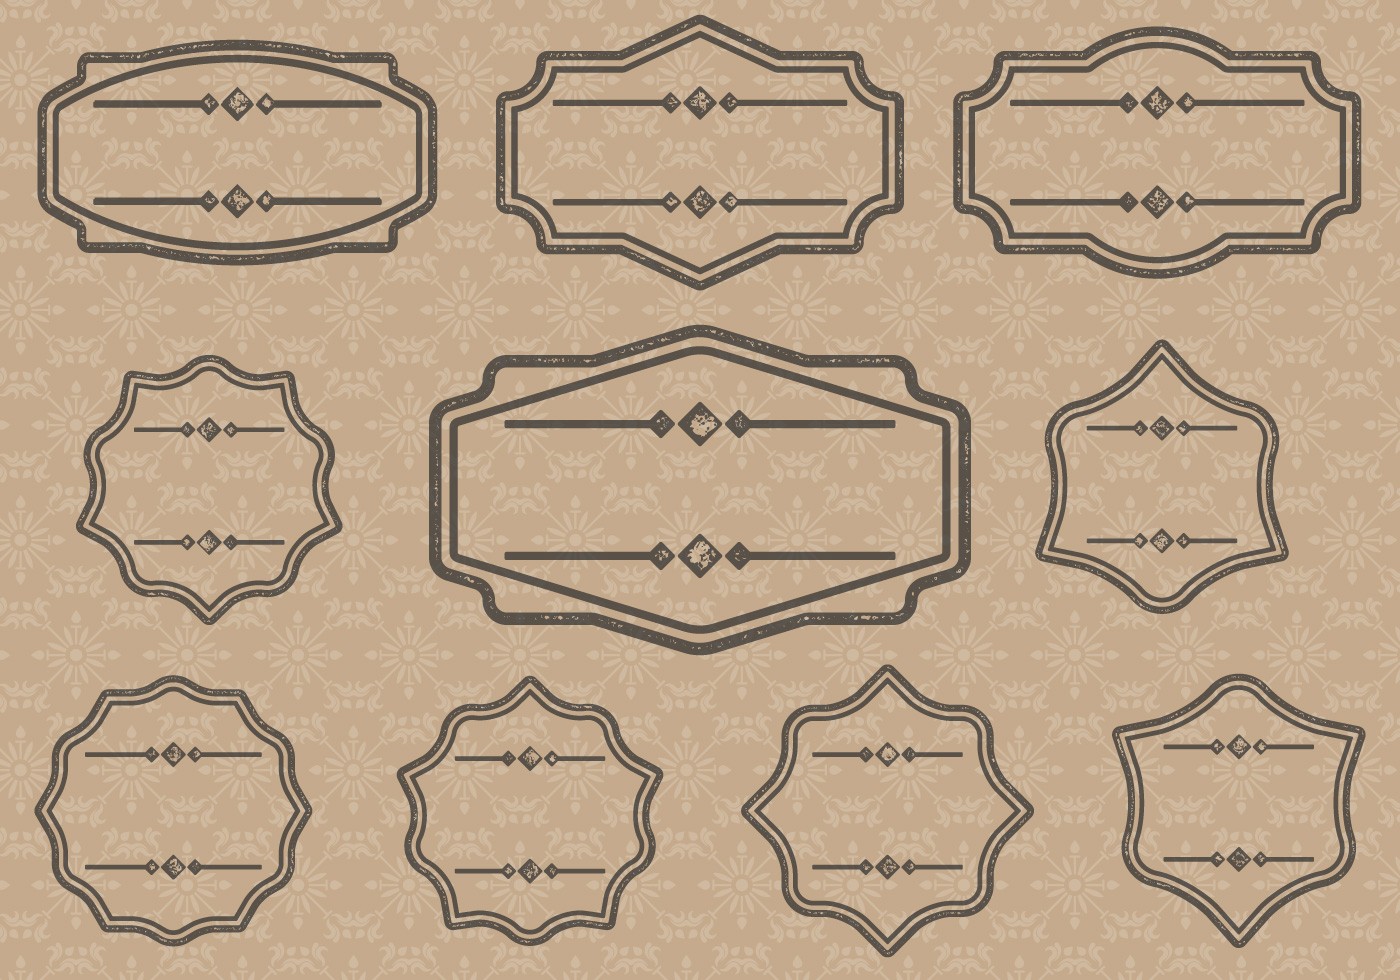 Vintage Label Cartouches - Download Free Vectors, Clipart ...